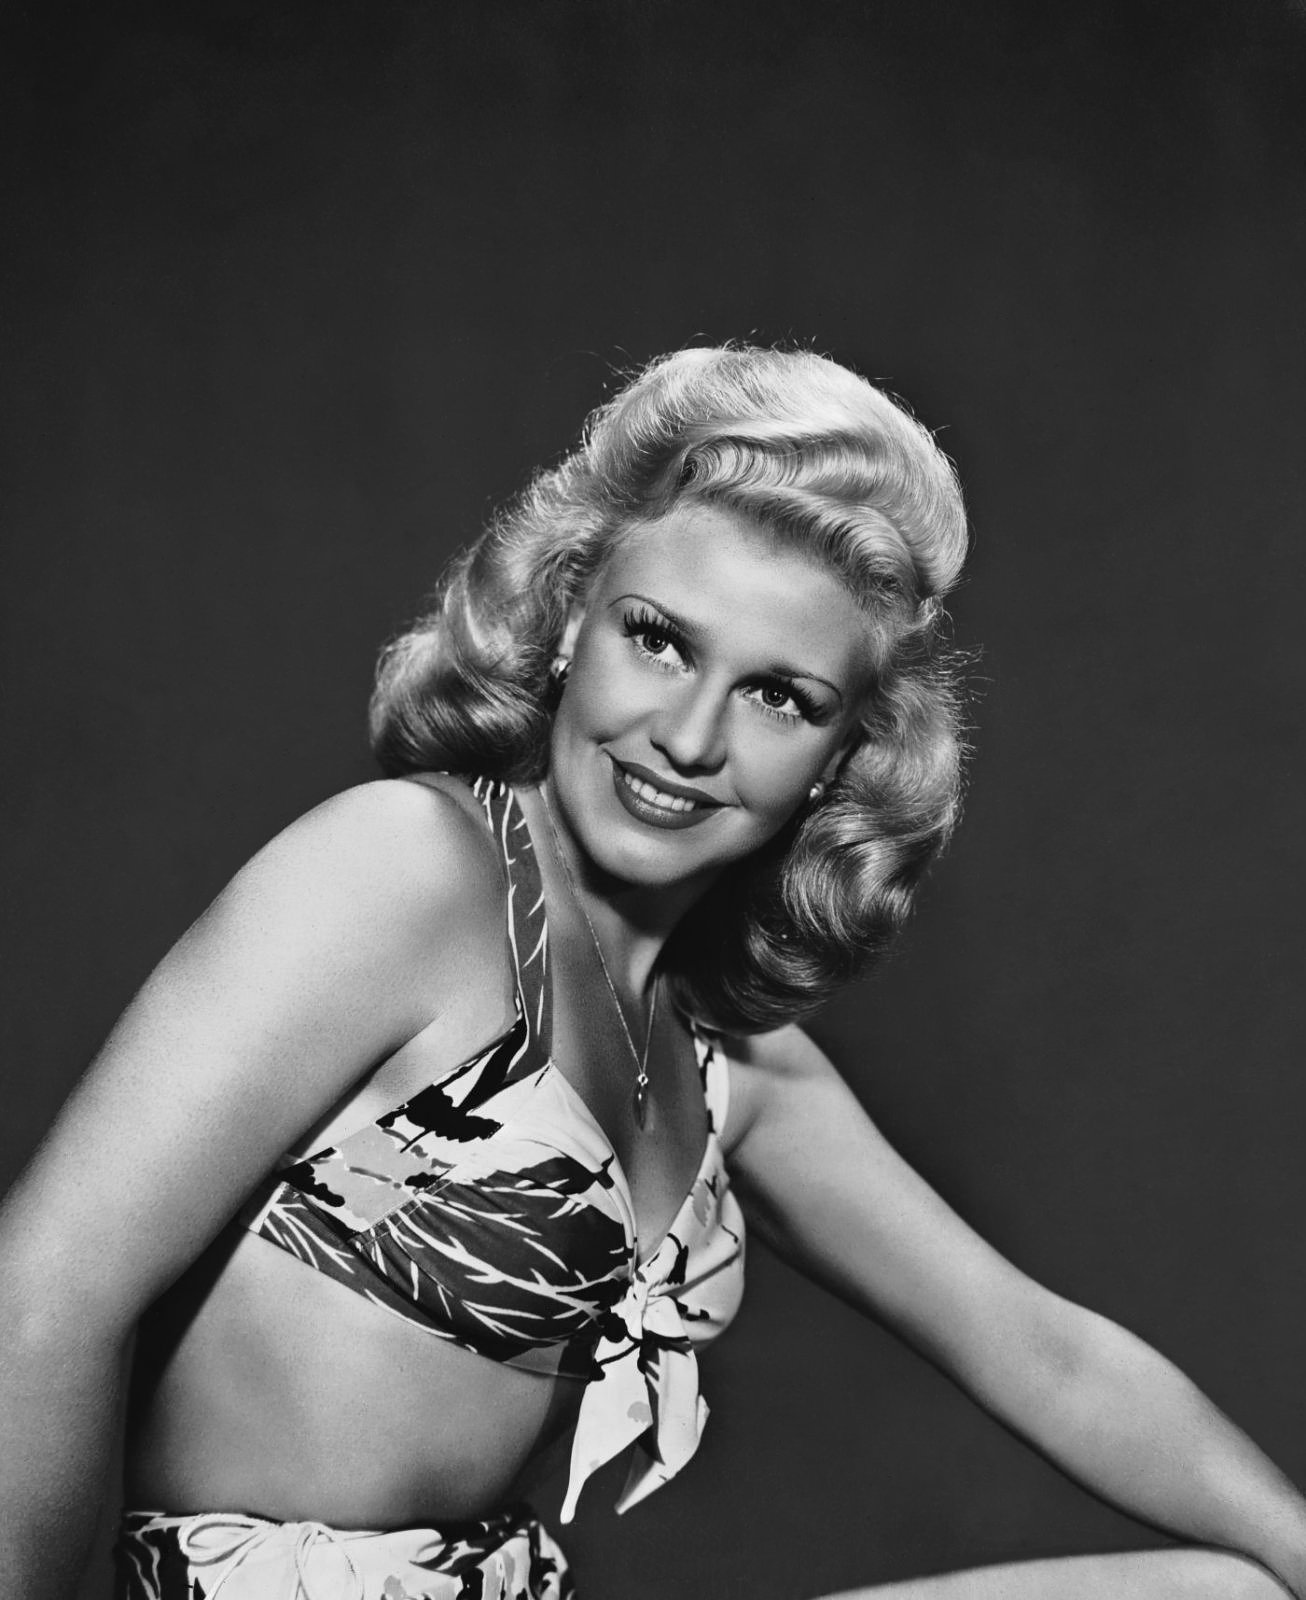 Forum on this topic: Patti Astor, ginger-rogers/